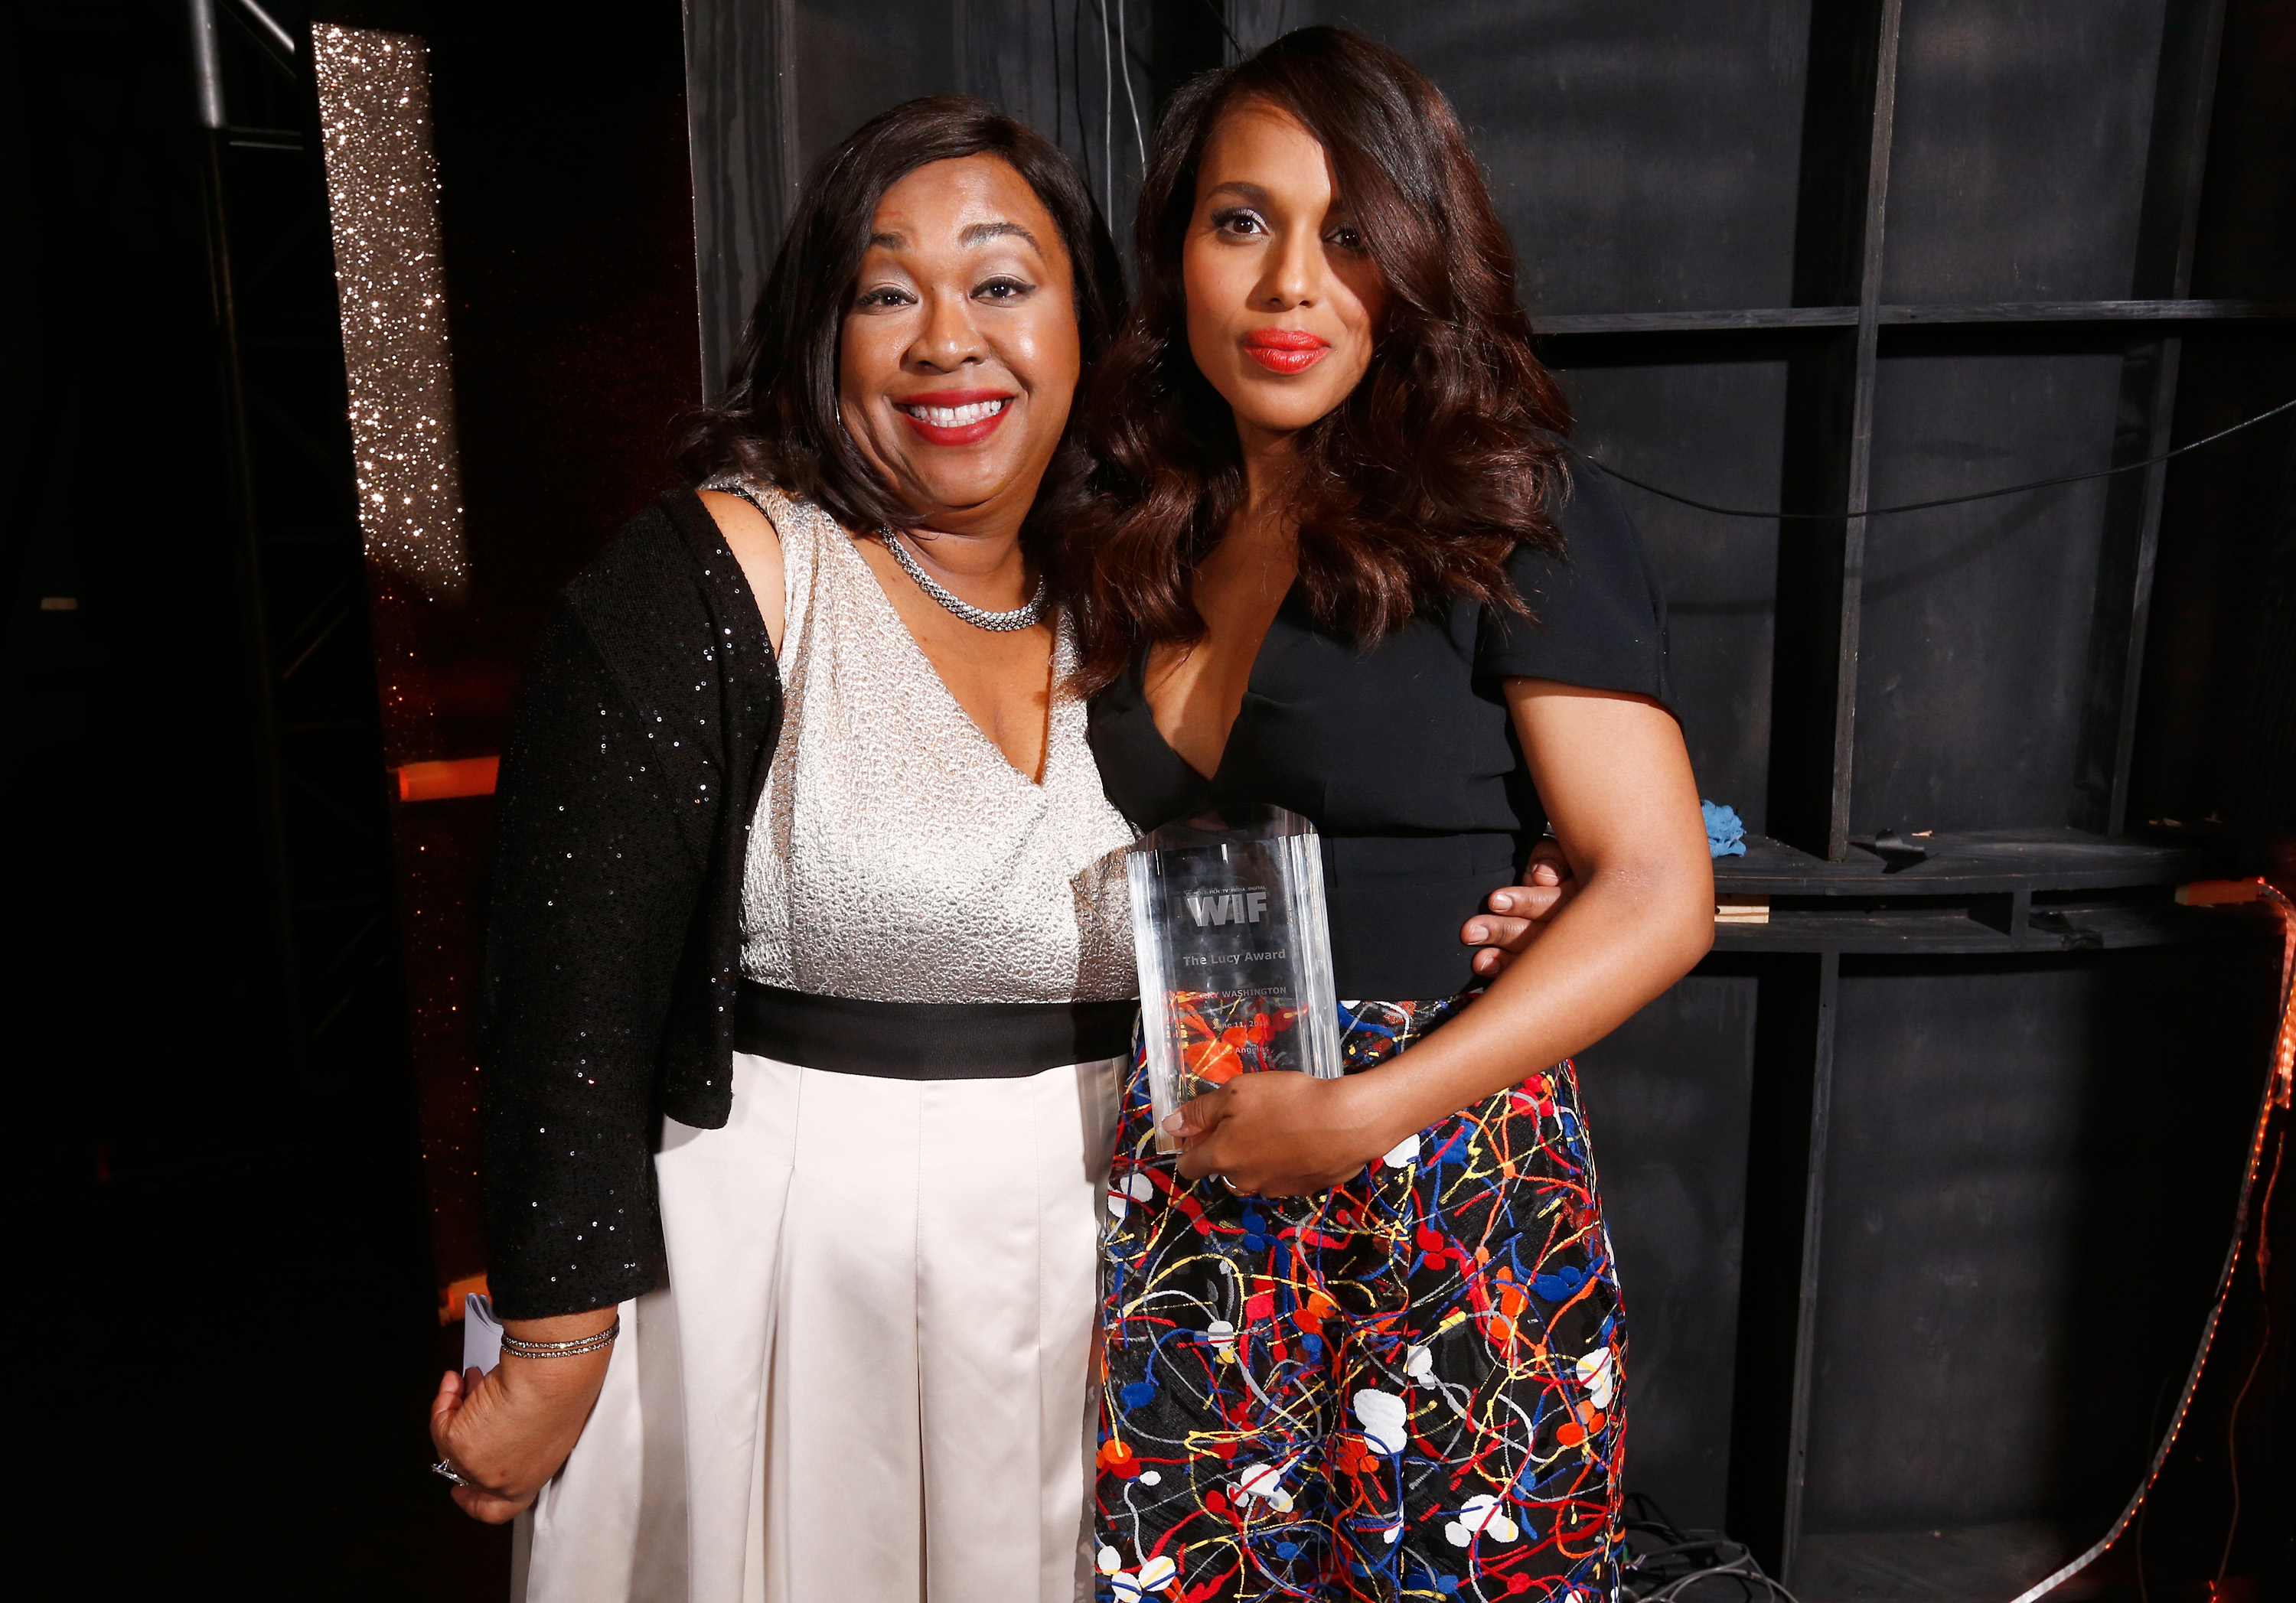 Kerry Washington and Shonda Rhimes at WIF  Crystal + Lucy Awards presented by MaxMara BMW Perrier Jouet South Coast Plaza Getty Images